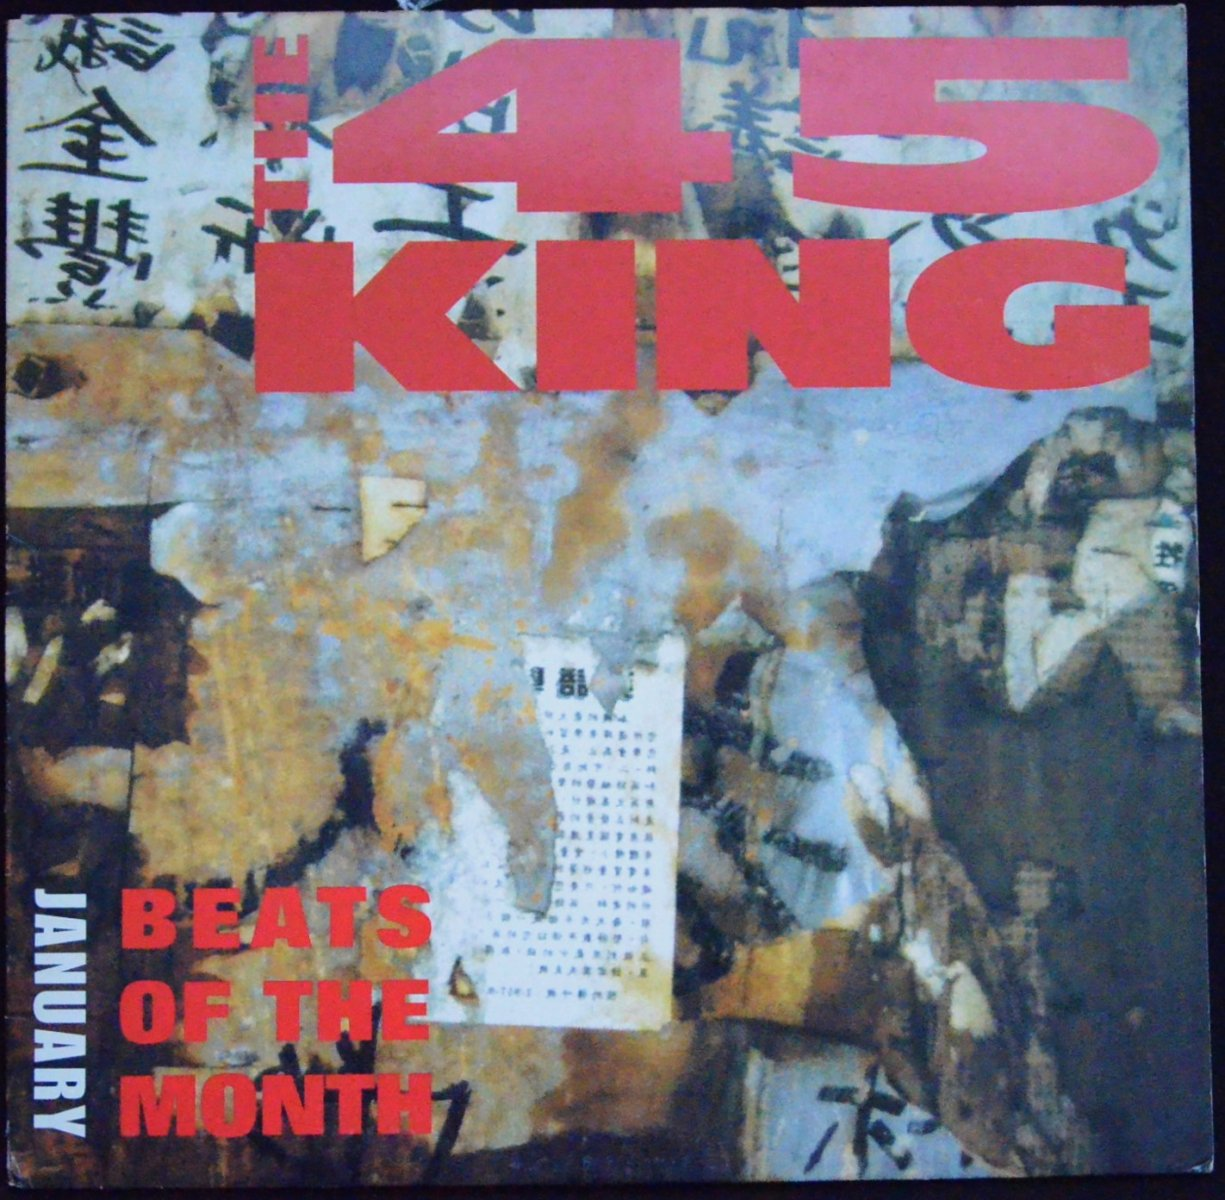 THE 45 KING / BEATS OF THE MONTH JANUARY (1LP)